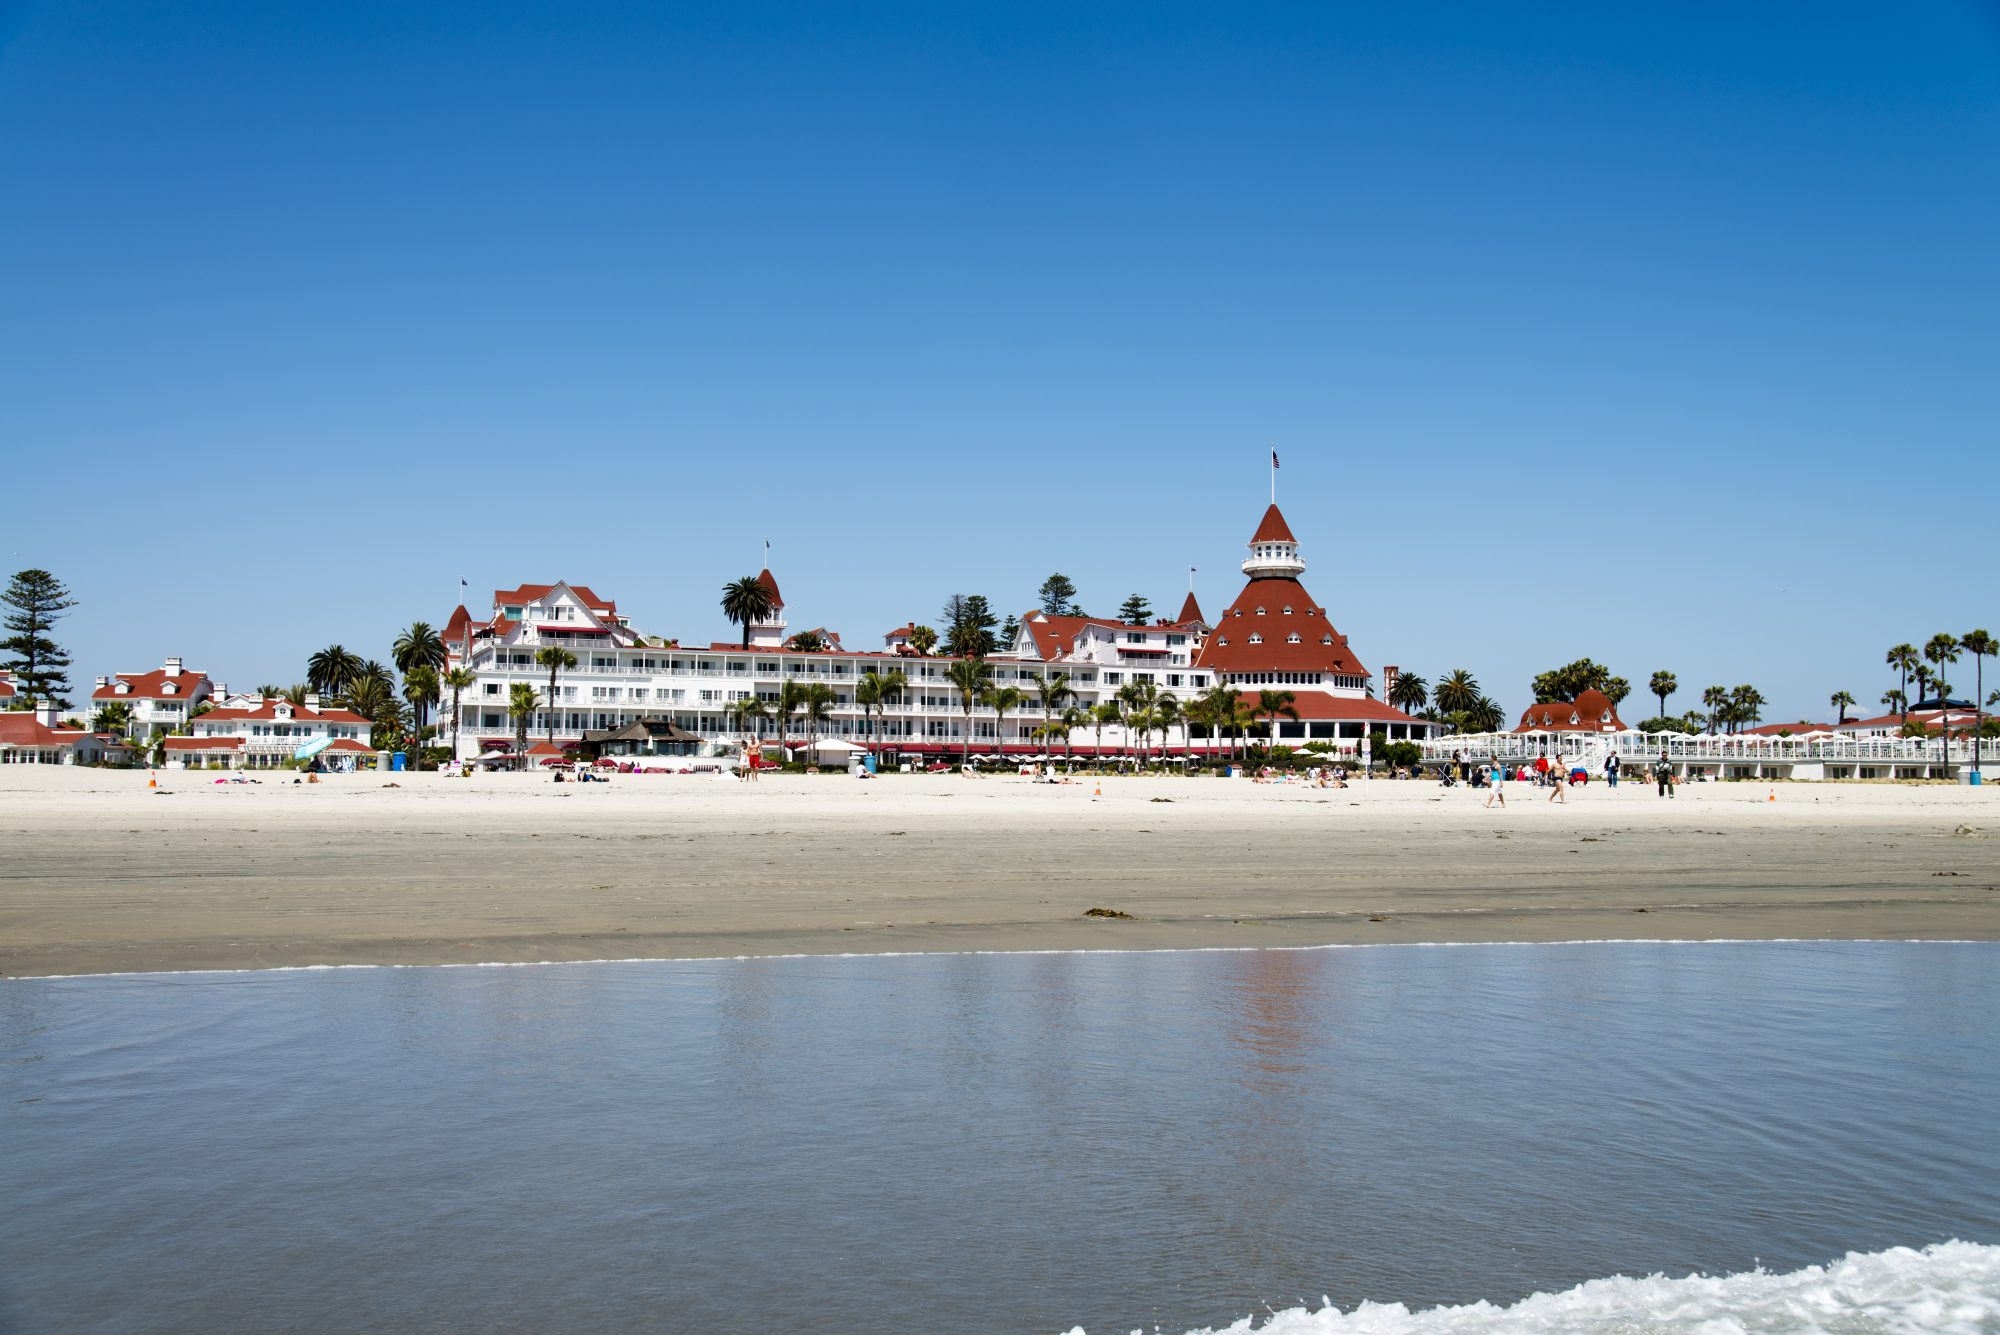 Coronado, USA - May 19, 2015: People at the beach on the Coronado Island near San Diego in California, USA, during a hot summer day. In the background the Hotel Del Coronado.